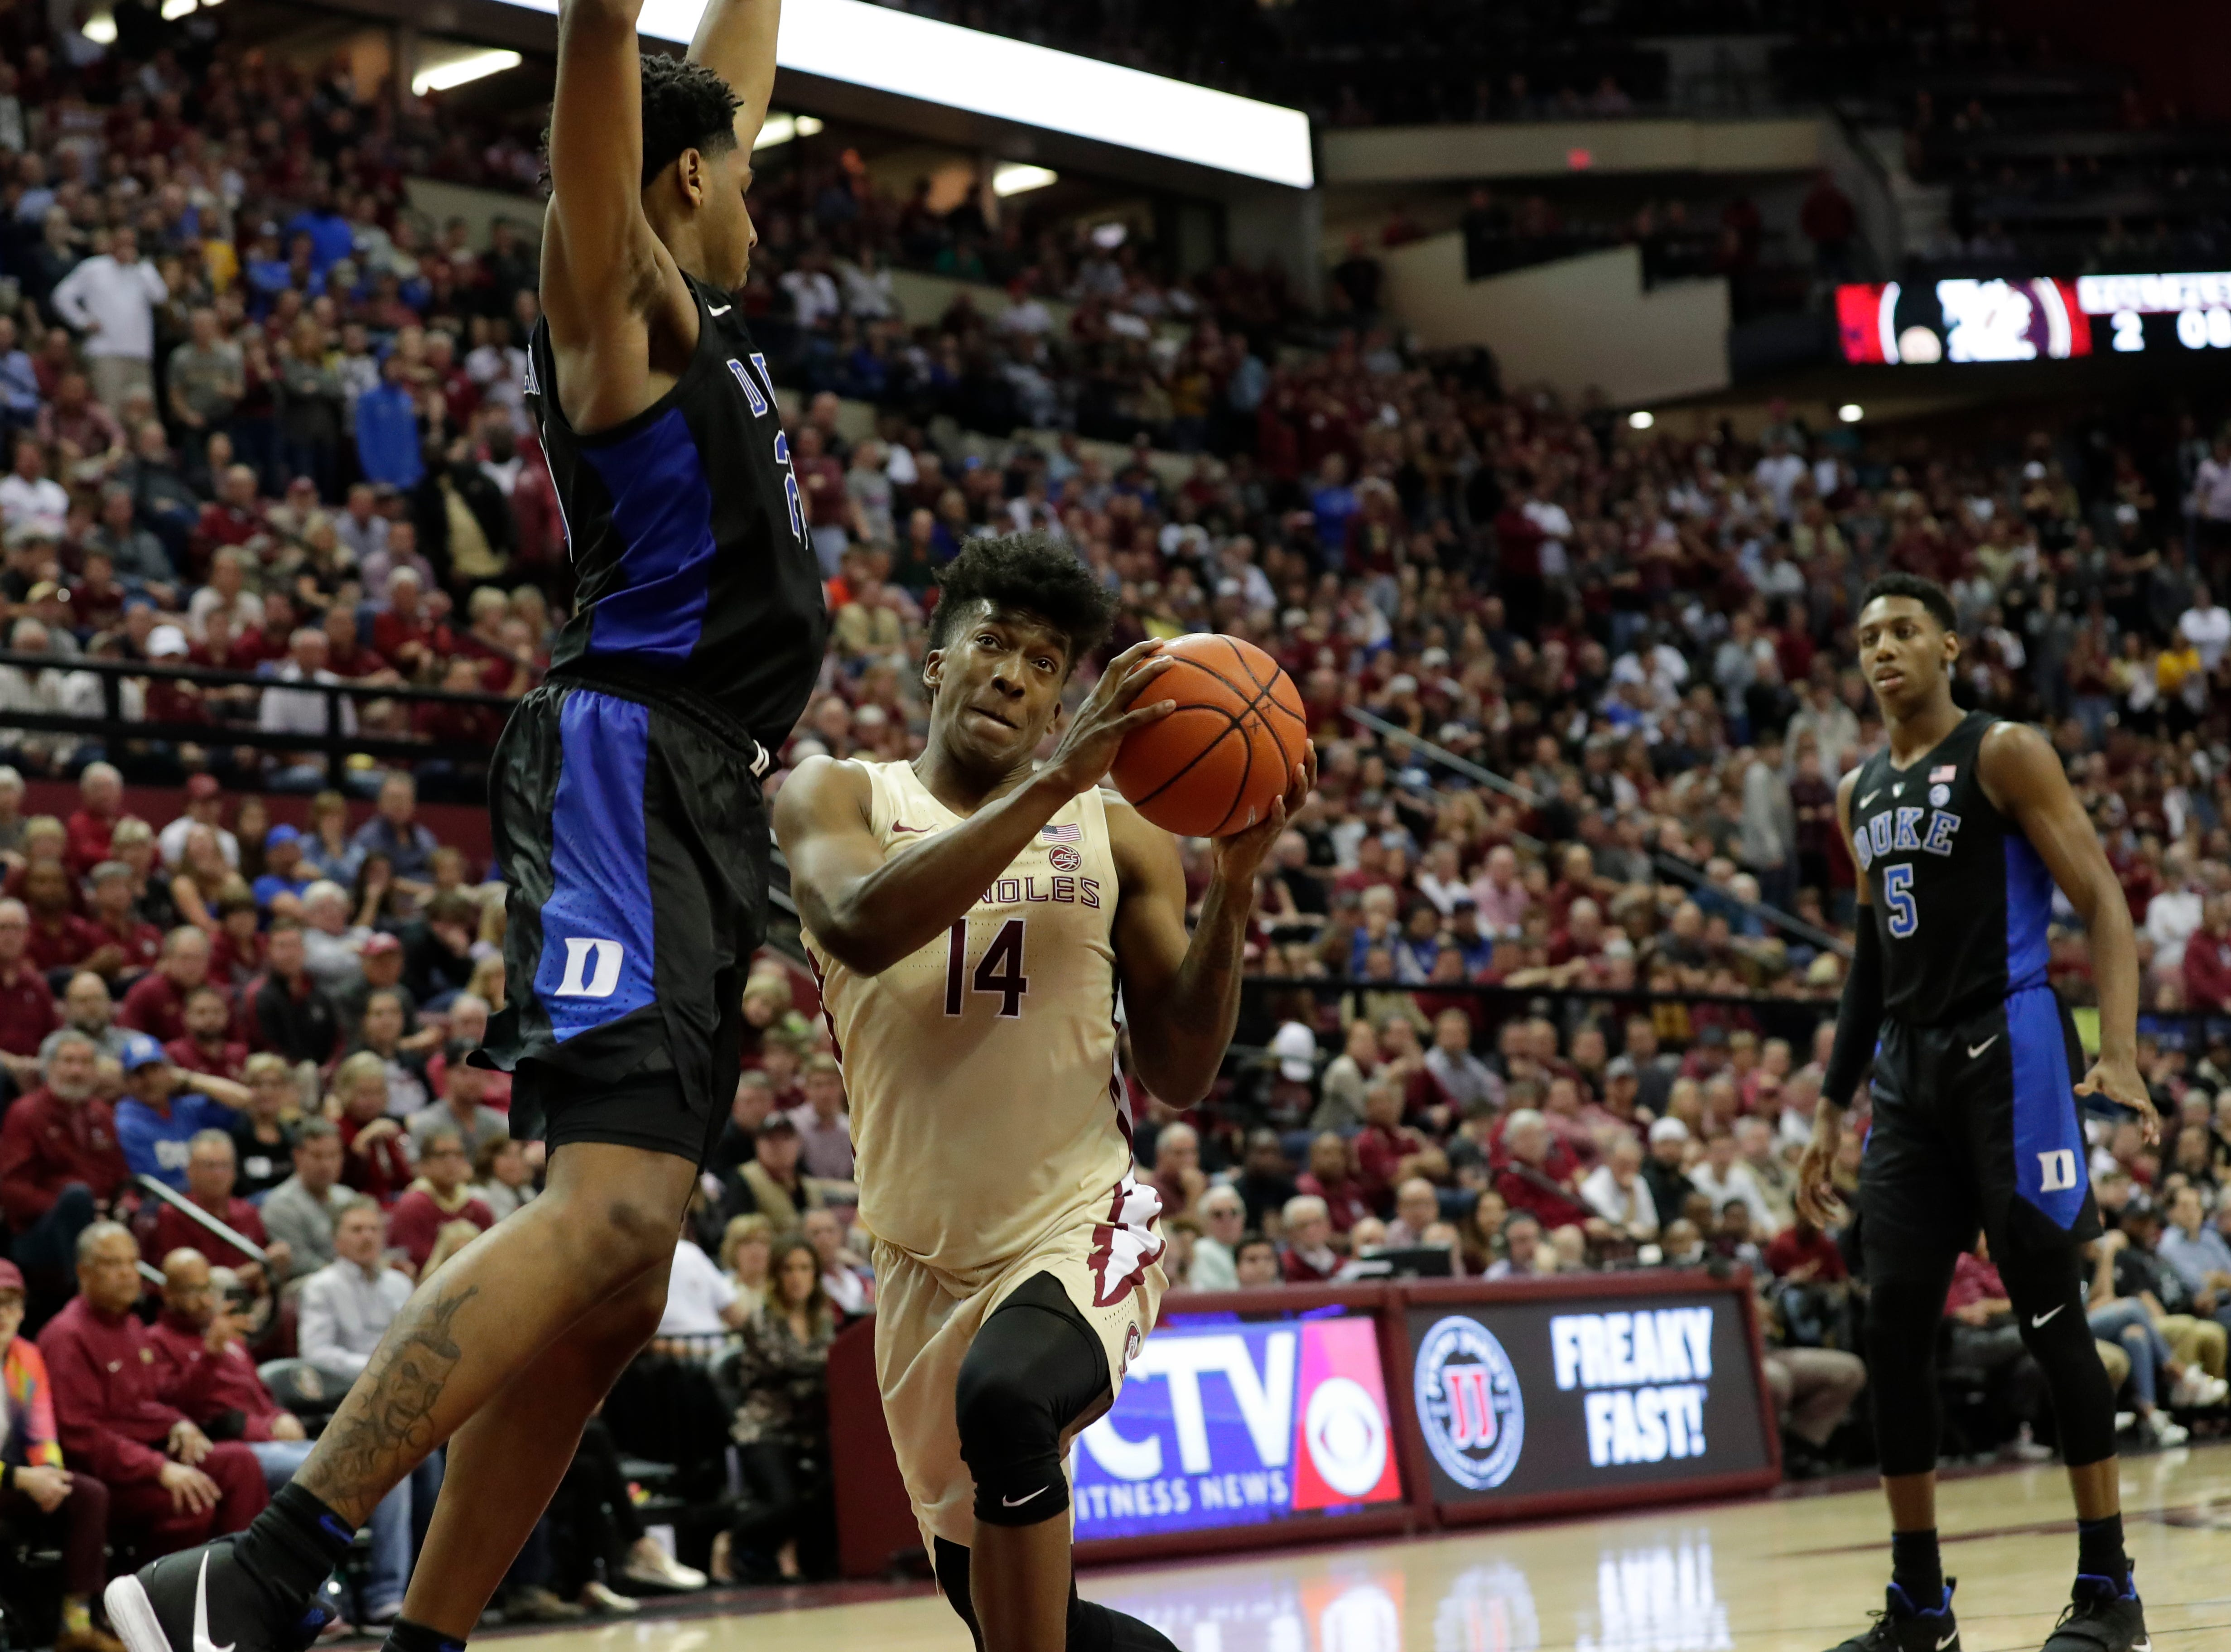 Florida State Seminoles guard Terance Mann (14) drives the ball to the hoop for a layup. Ranked 13 in the ACC, the Florida State Seminoles host the number 1 team, the Duke Blue Devils, at the Tucker Civic Center, Saturday, Jan. 12, 2019.